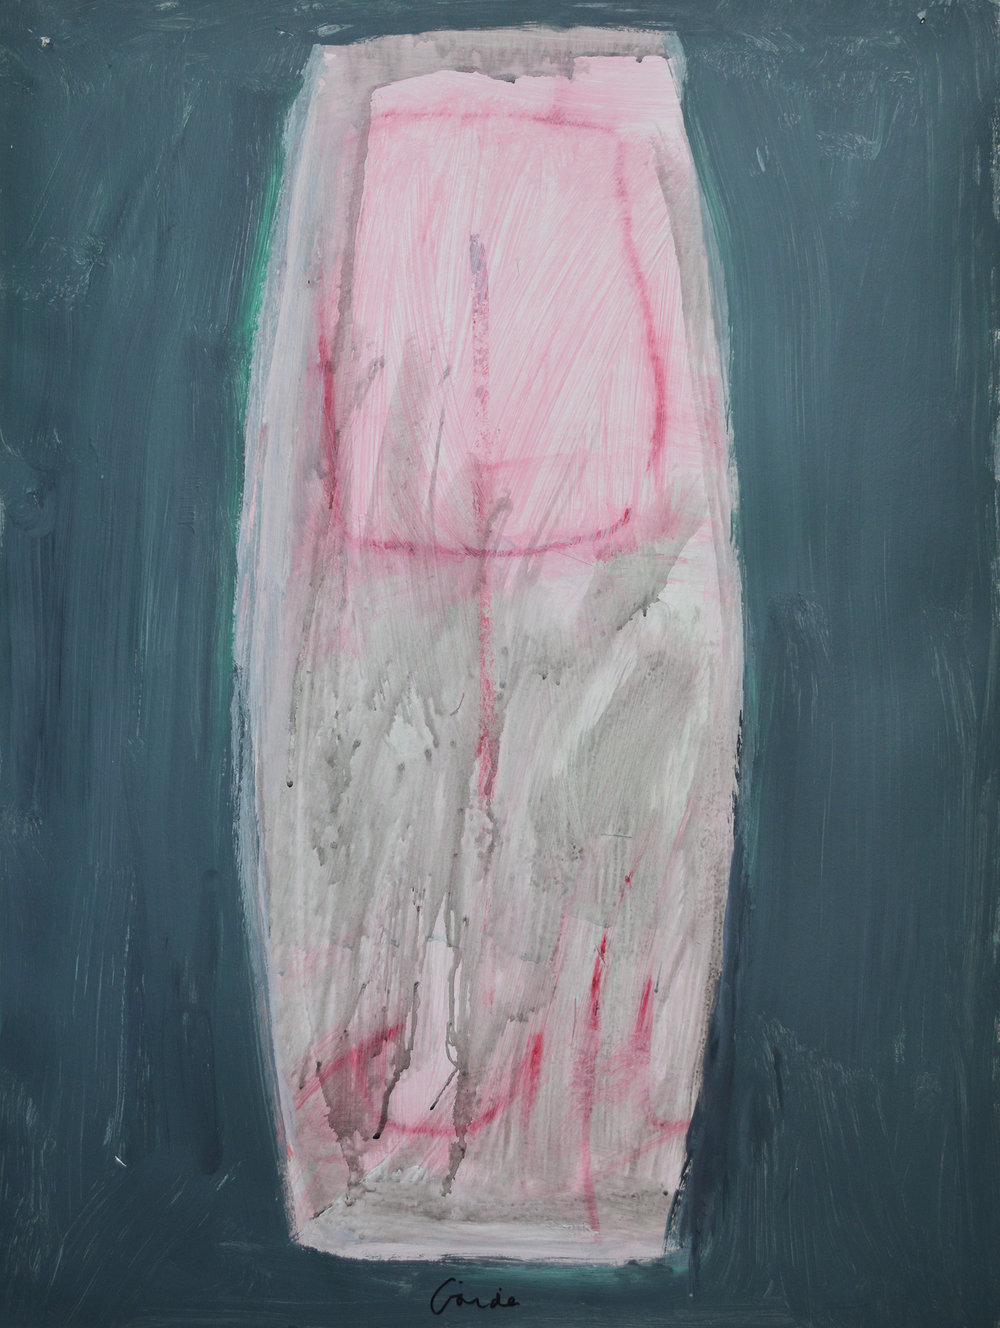 Pink Vessel , 2004. Acrylic on paper, 30 x 22 in. (76 x 56 cm.)